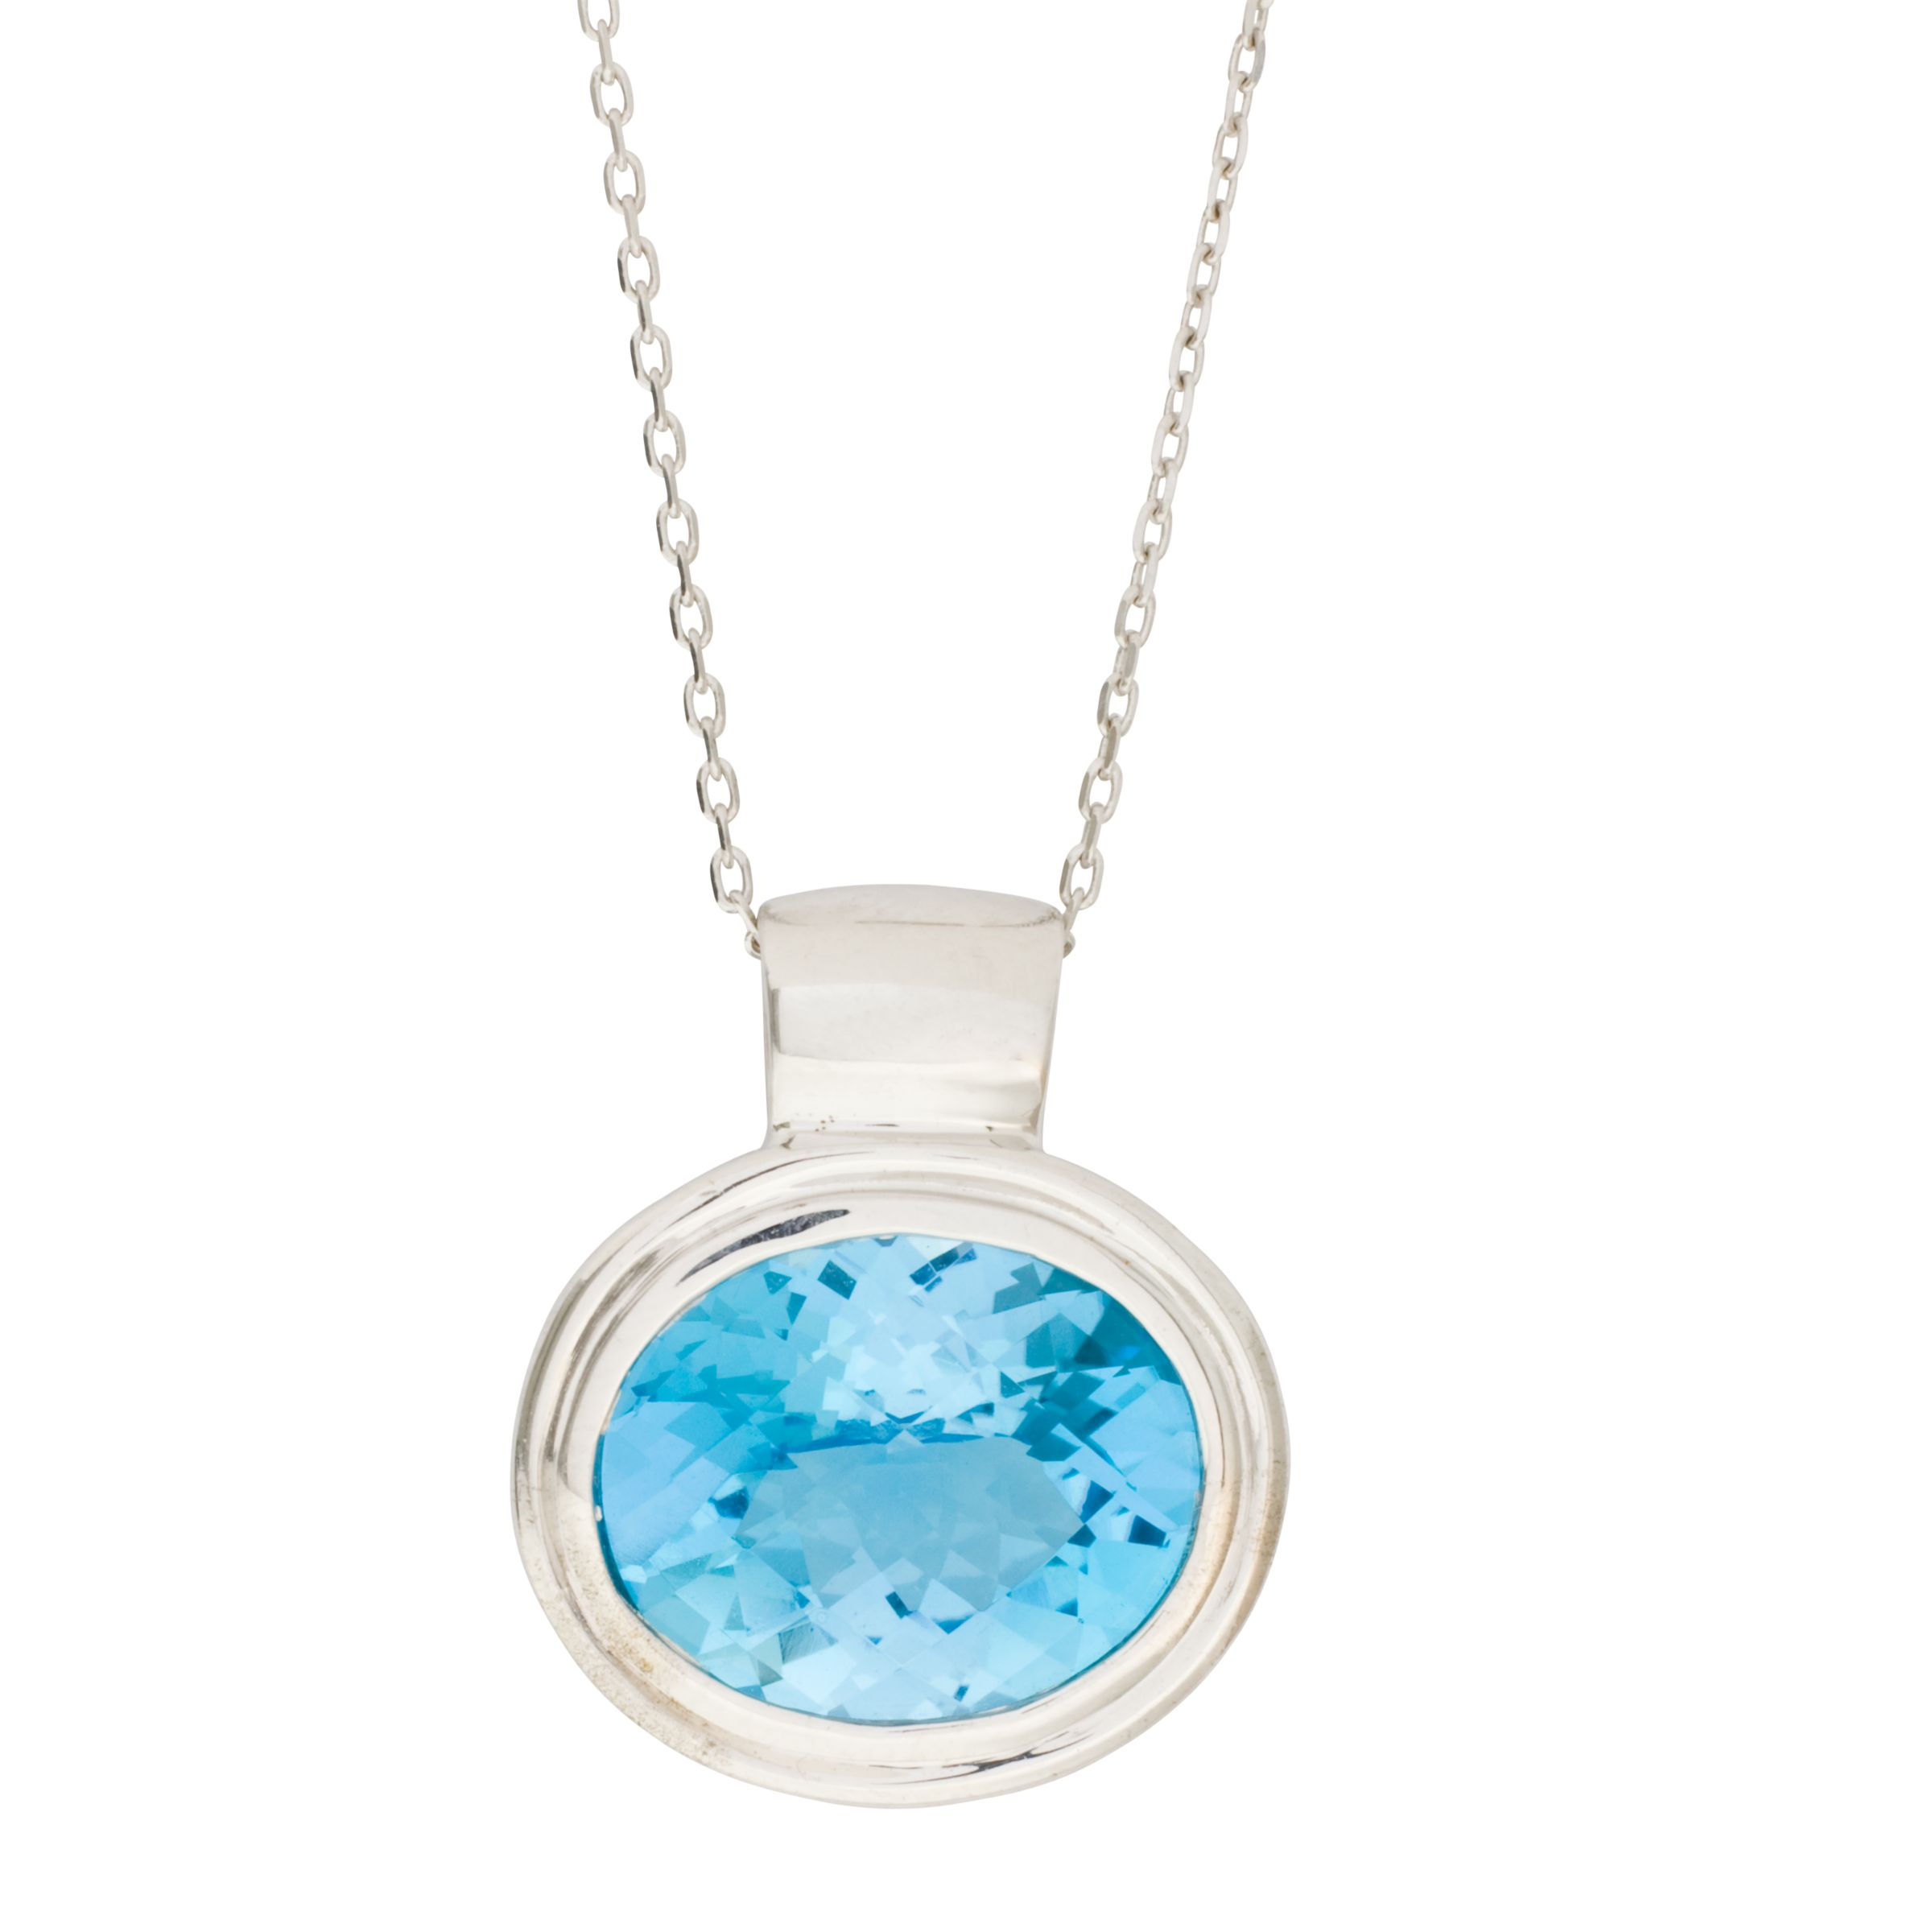 London Road White Gold Oval Topaz Pendant Necklace